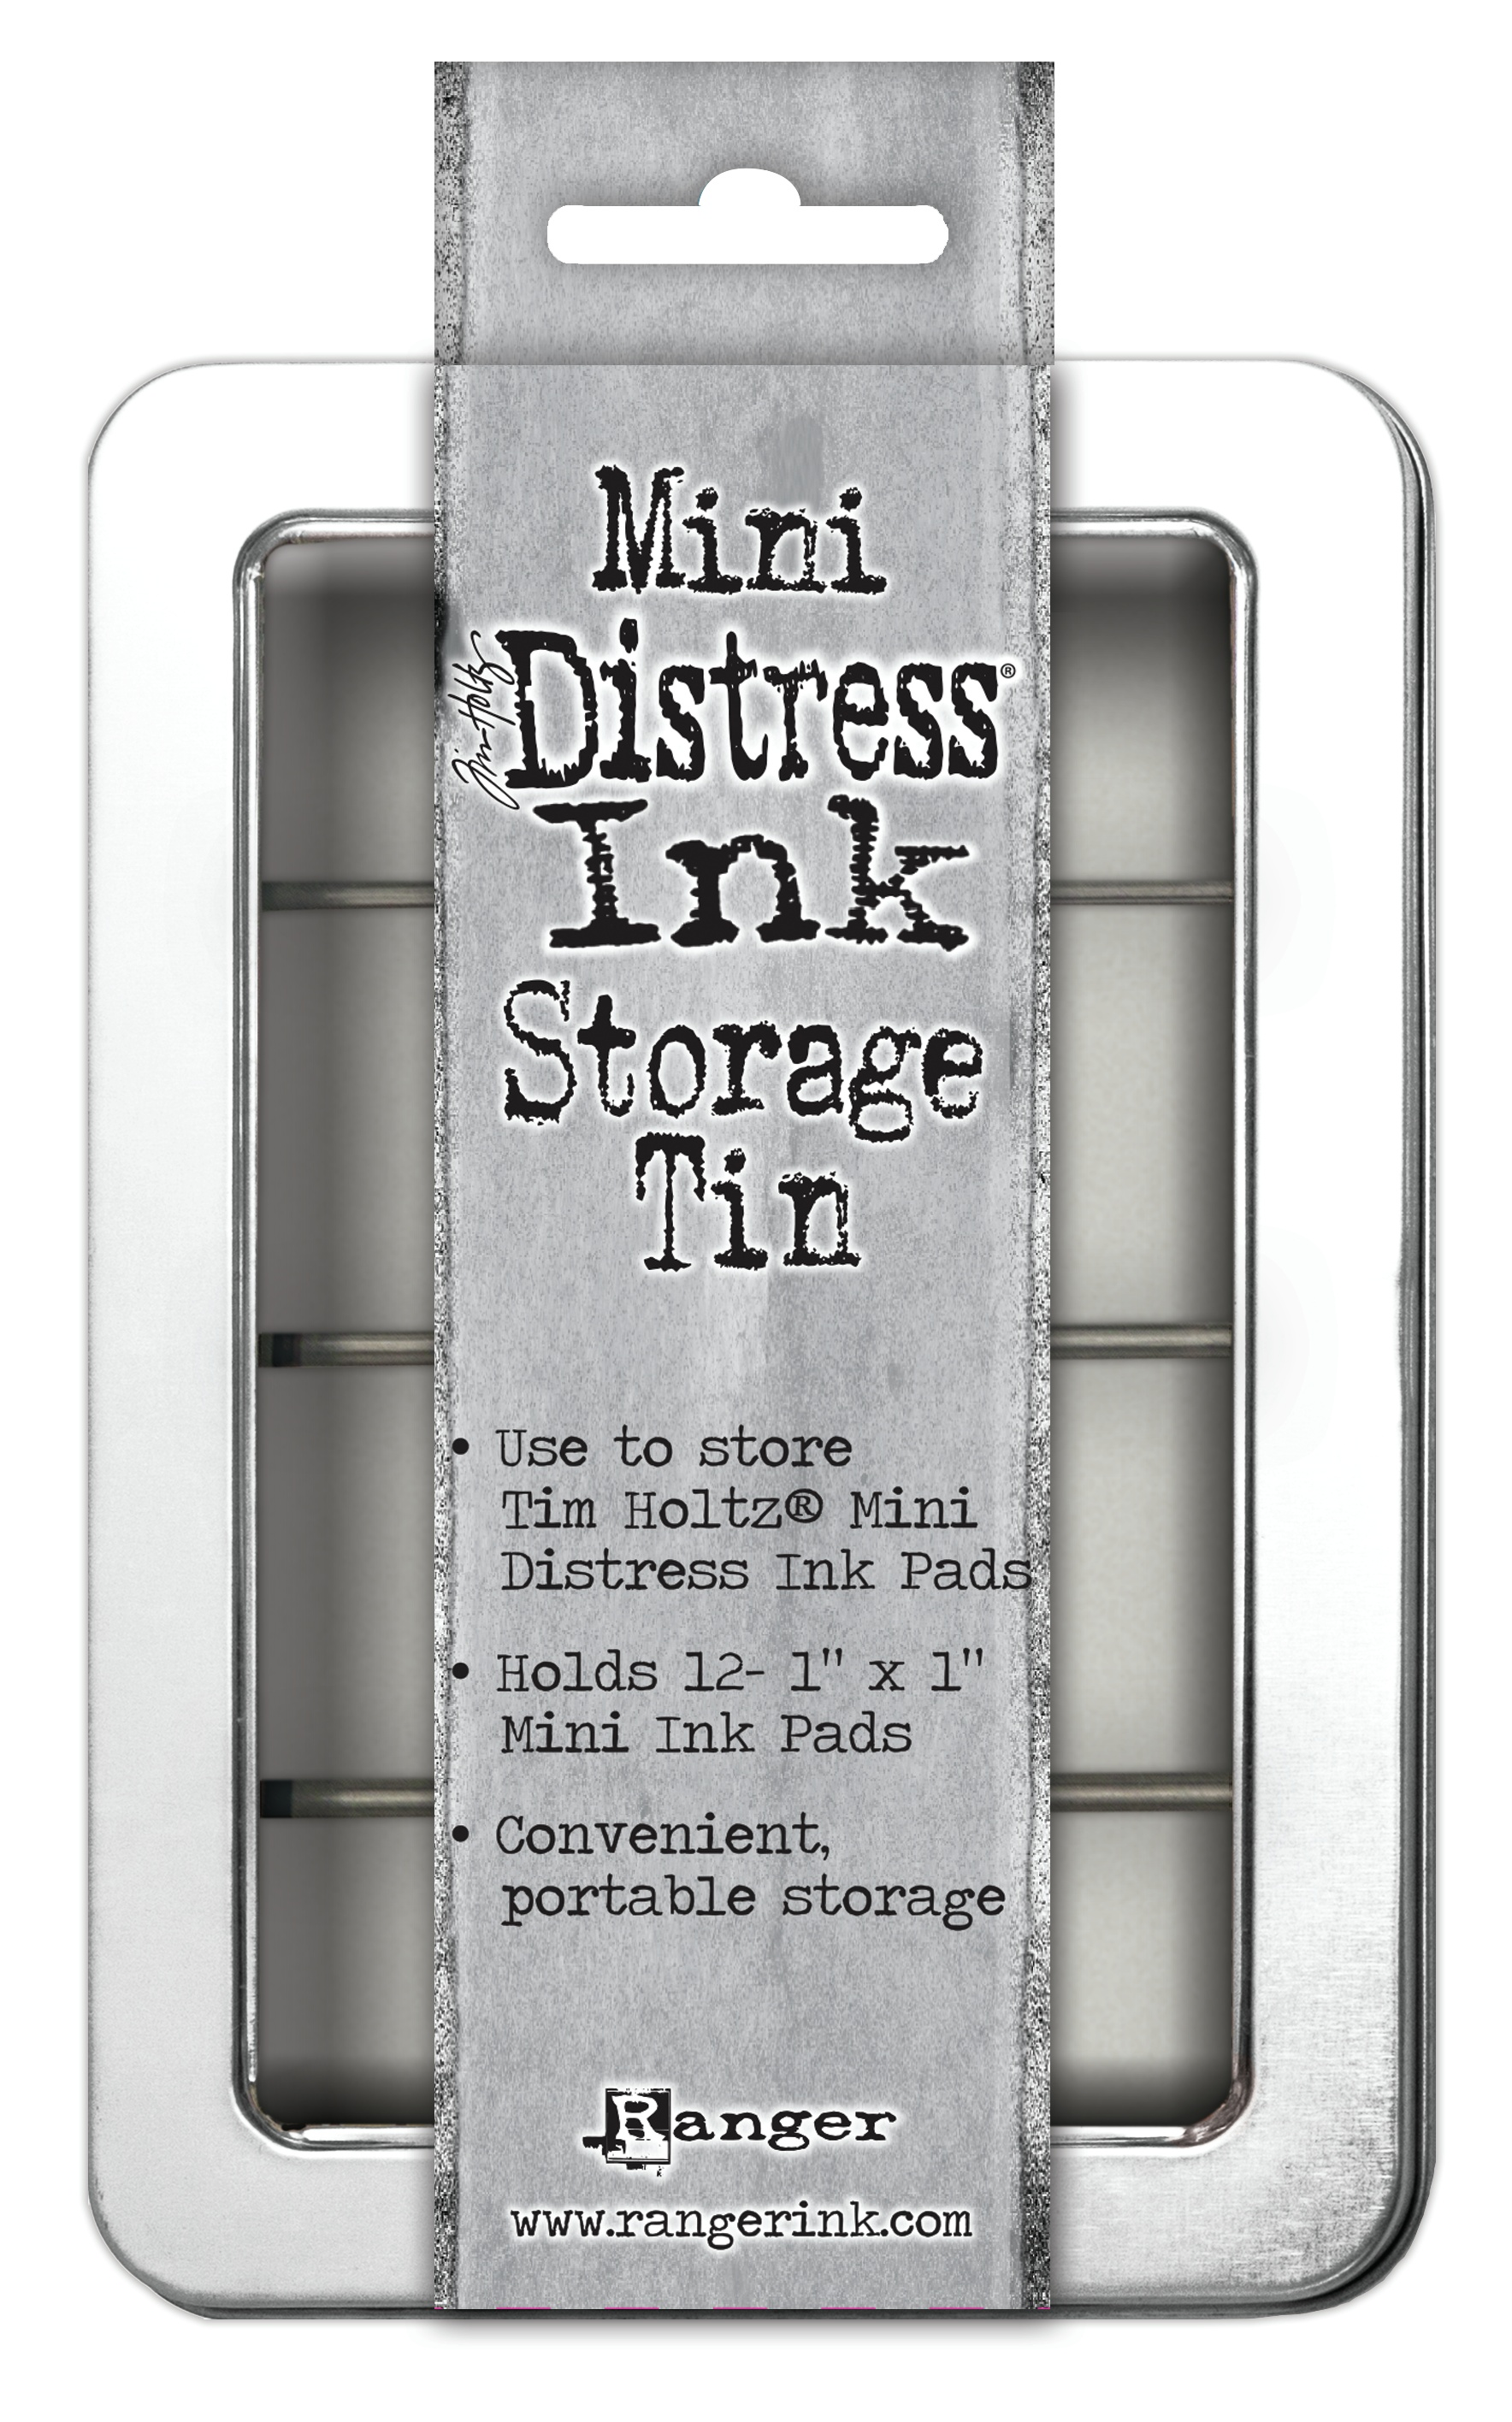 Tim Holtz Mini Distress Ink Storage Tin-Holds 12